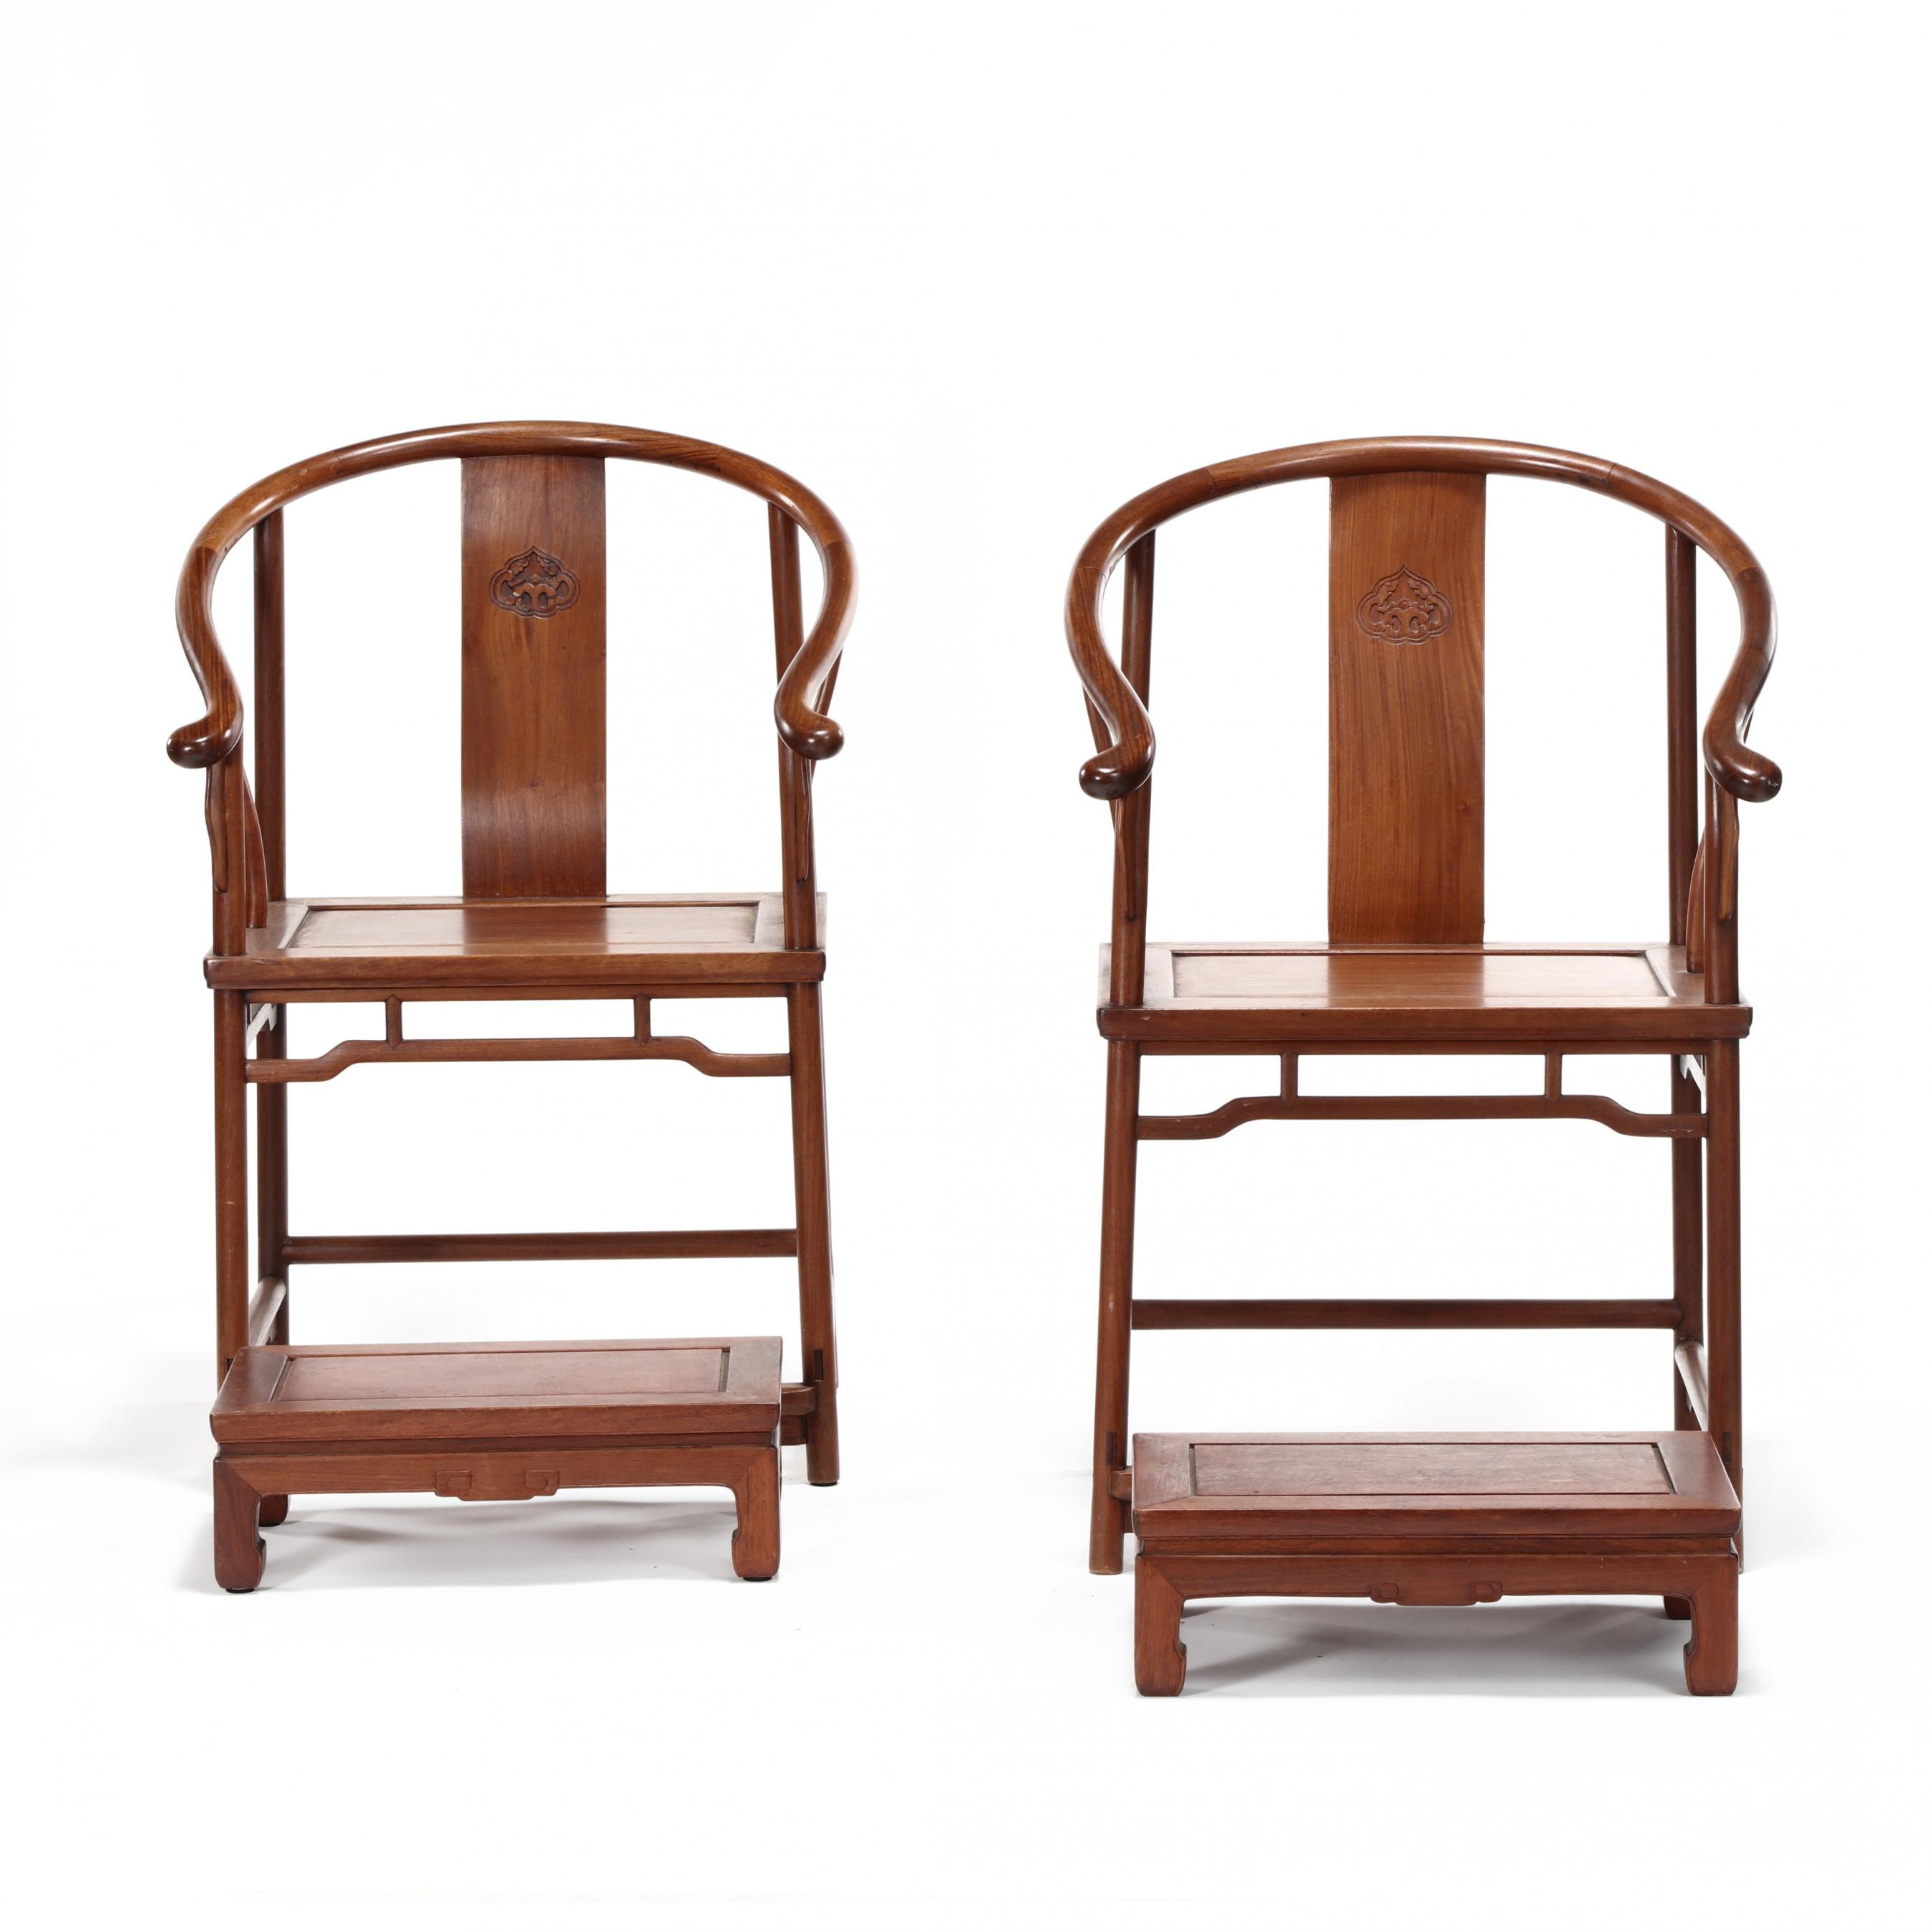 a-pair-of-chinese-teak-chairs-with-footstools